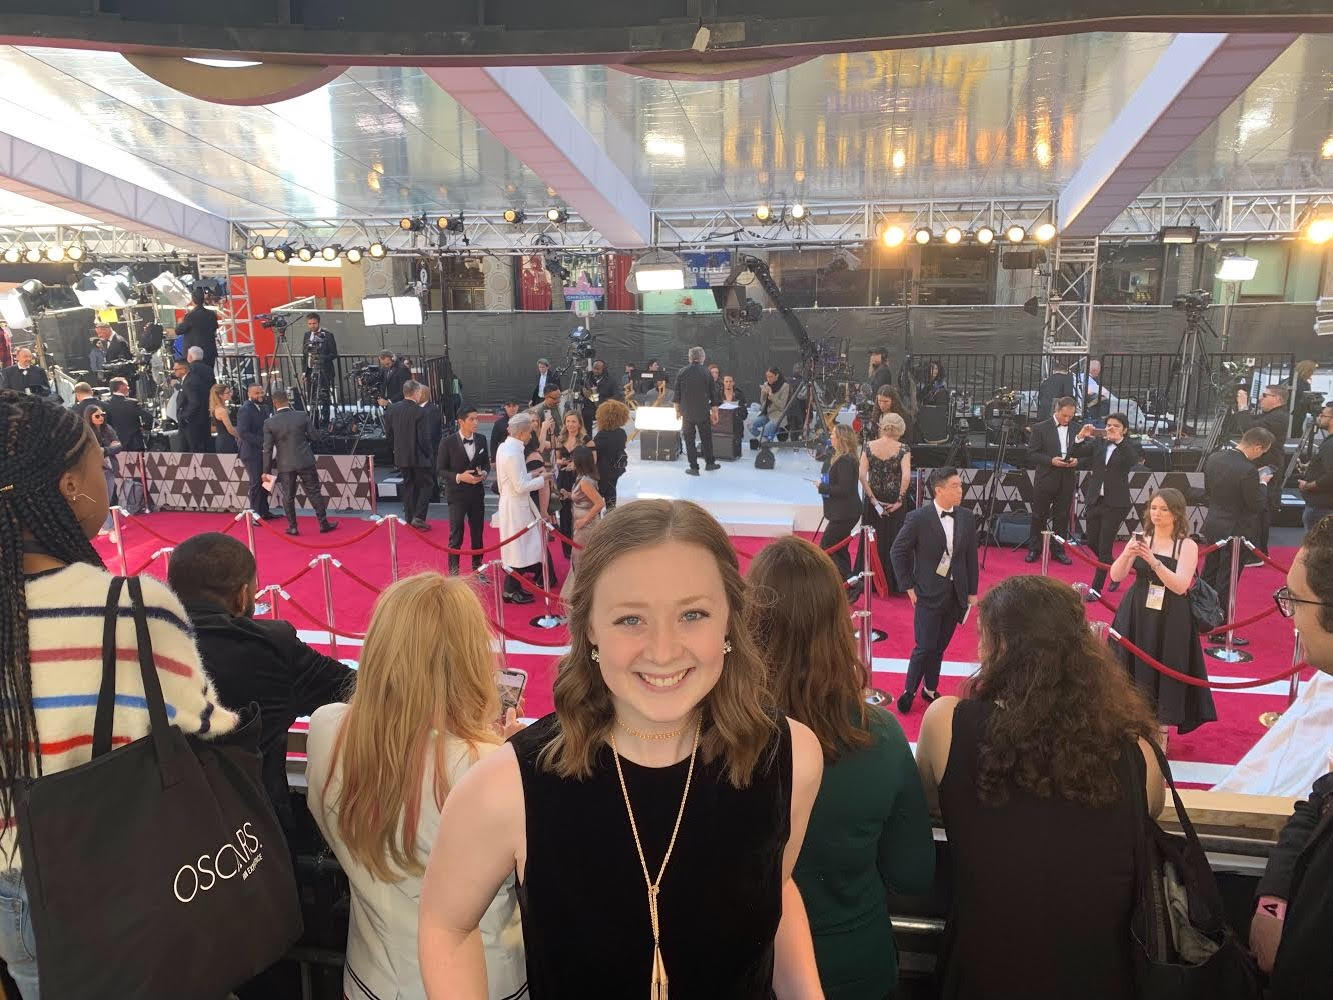 Former MPI intern Carly Hicks attends the Academy Awards thanks to MPI's relationship with Academy Gold.